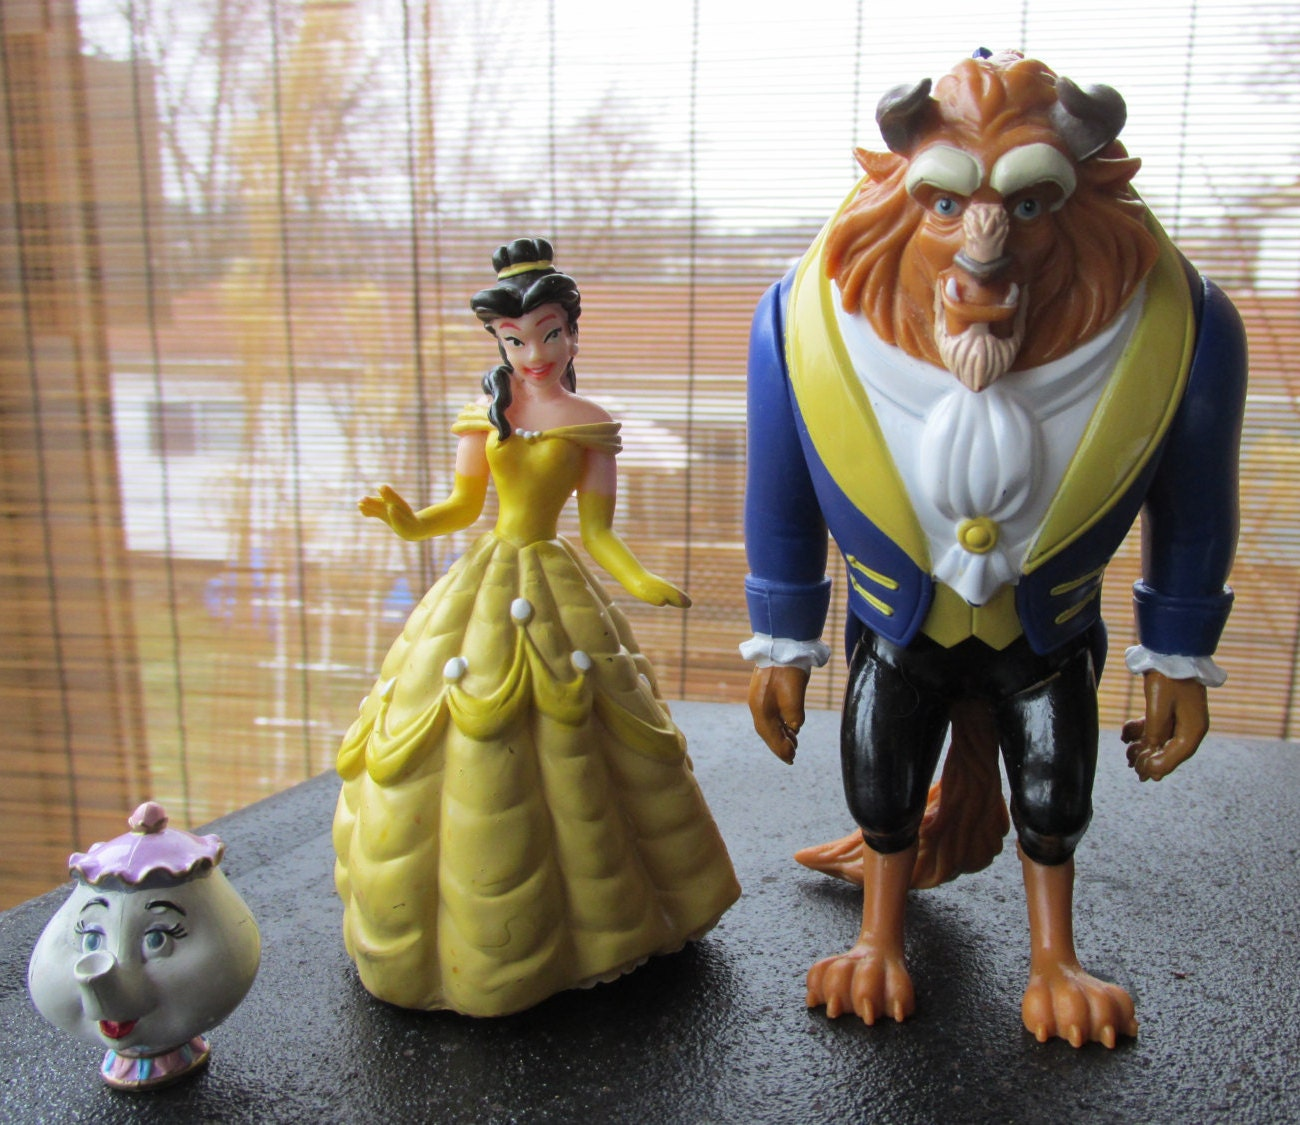 Beauty And The Beast Figure Vintage Disney Character Figurines